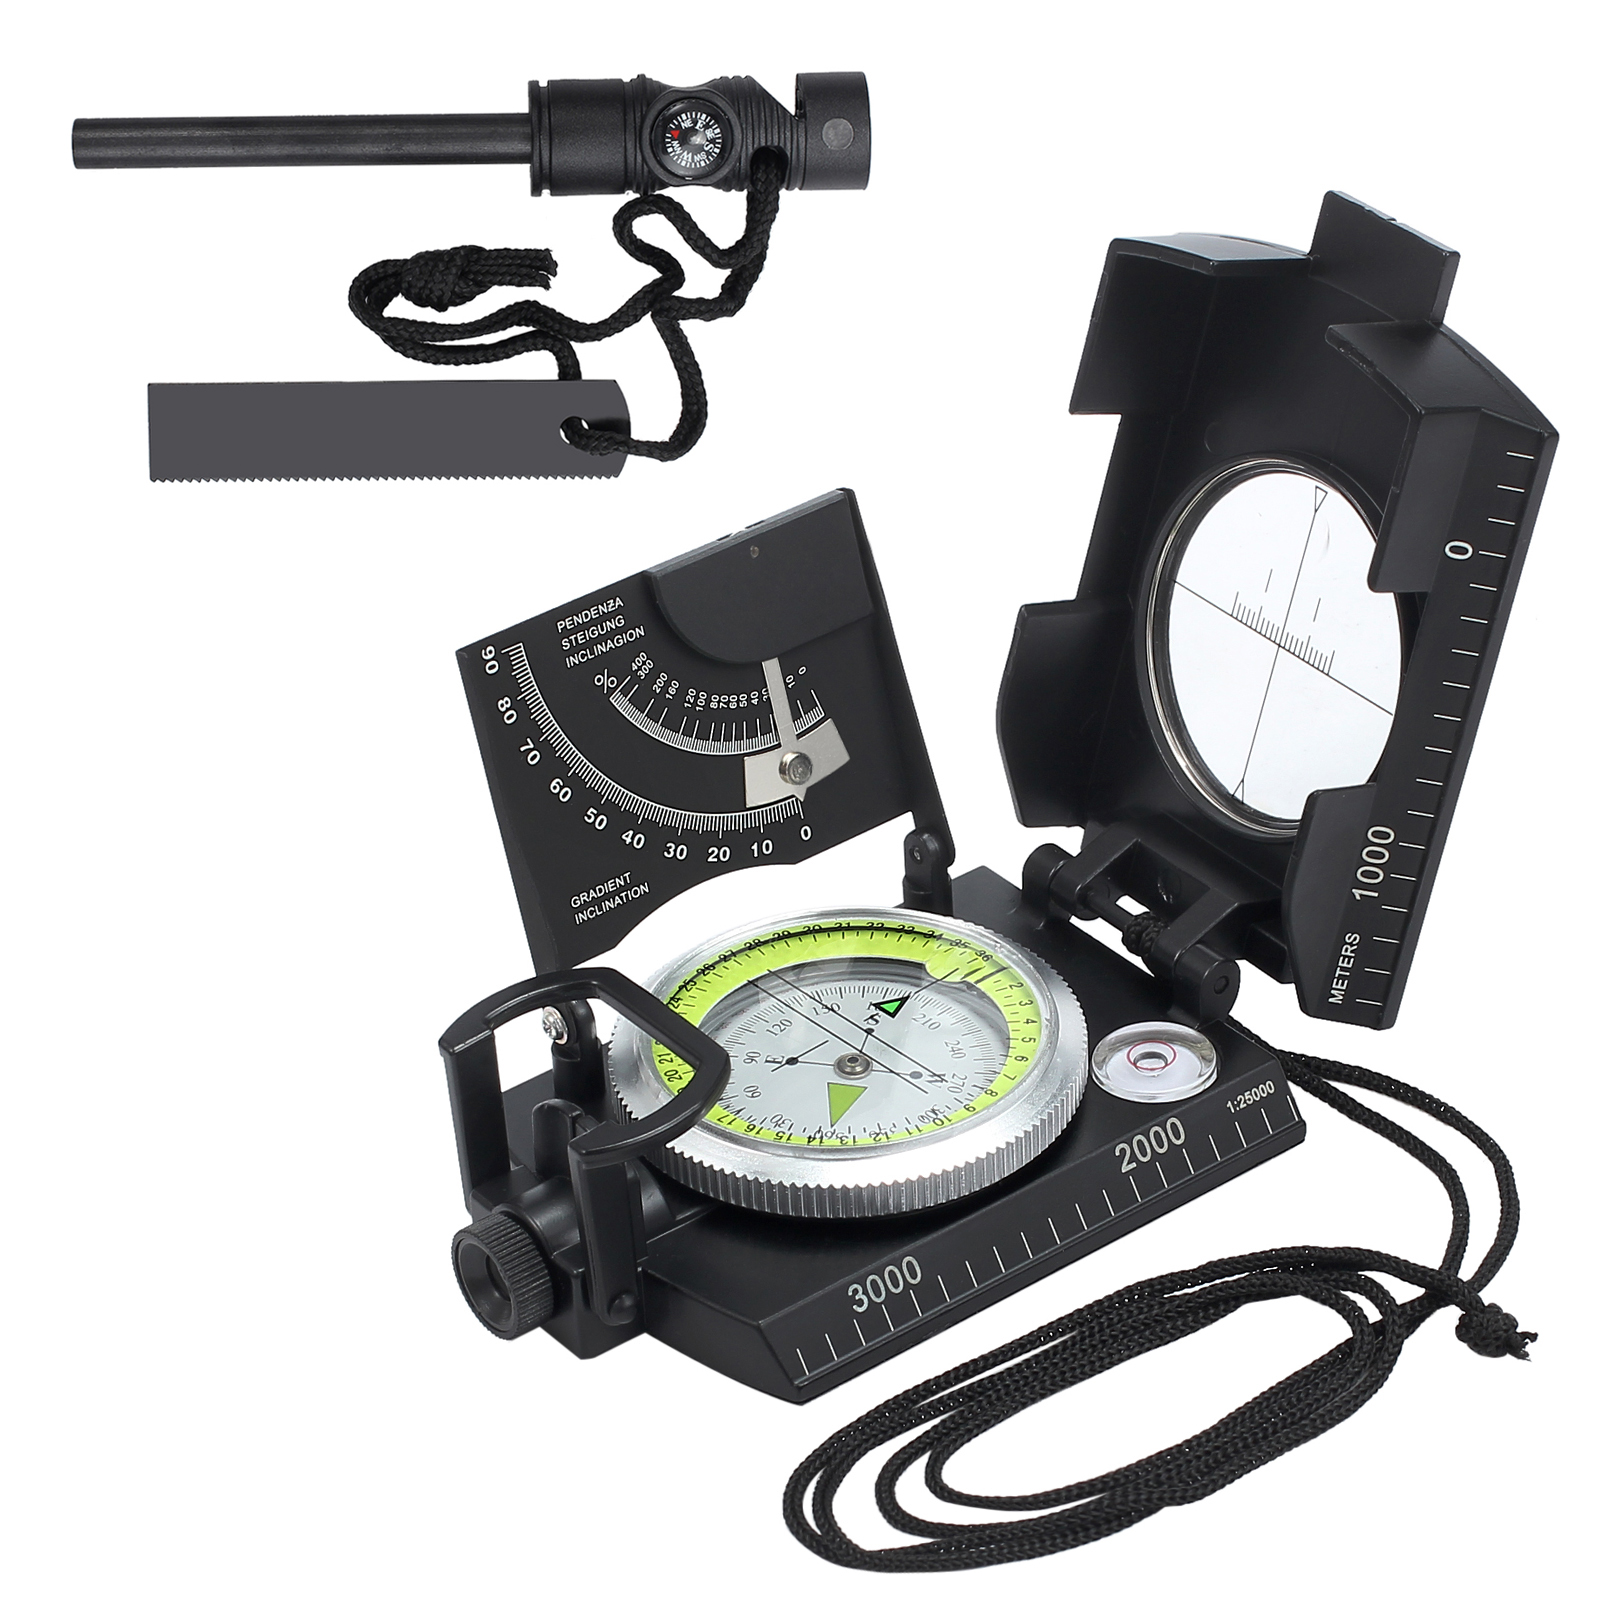 ESYNIC Professional Compass Metal Waterproof IP65 Compass Sighting  Clinometer with Carry Bag for Camping Hunting Hiking Geology and Other  Outdoor